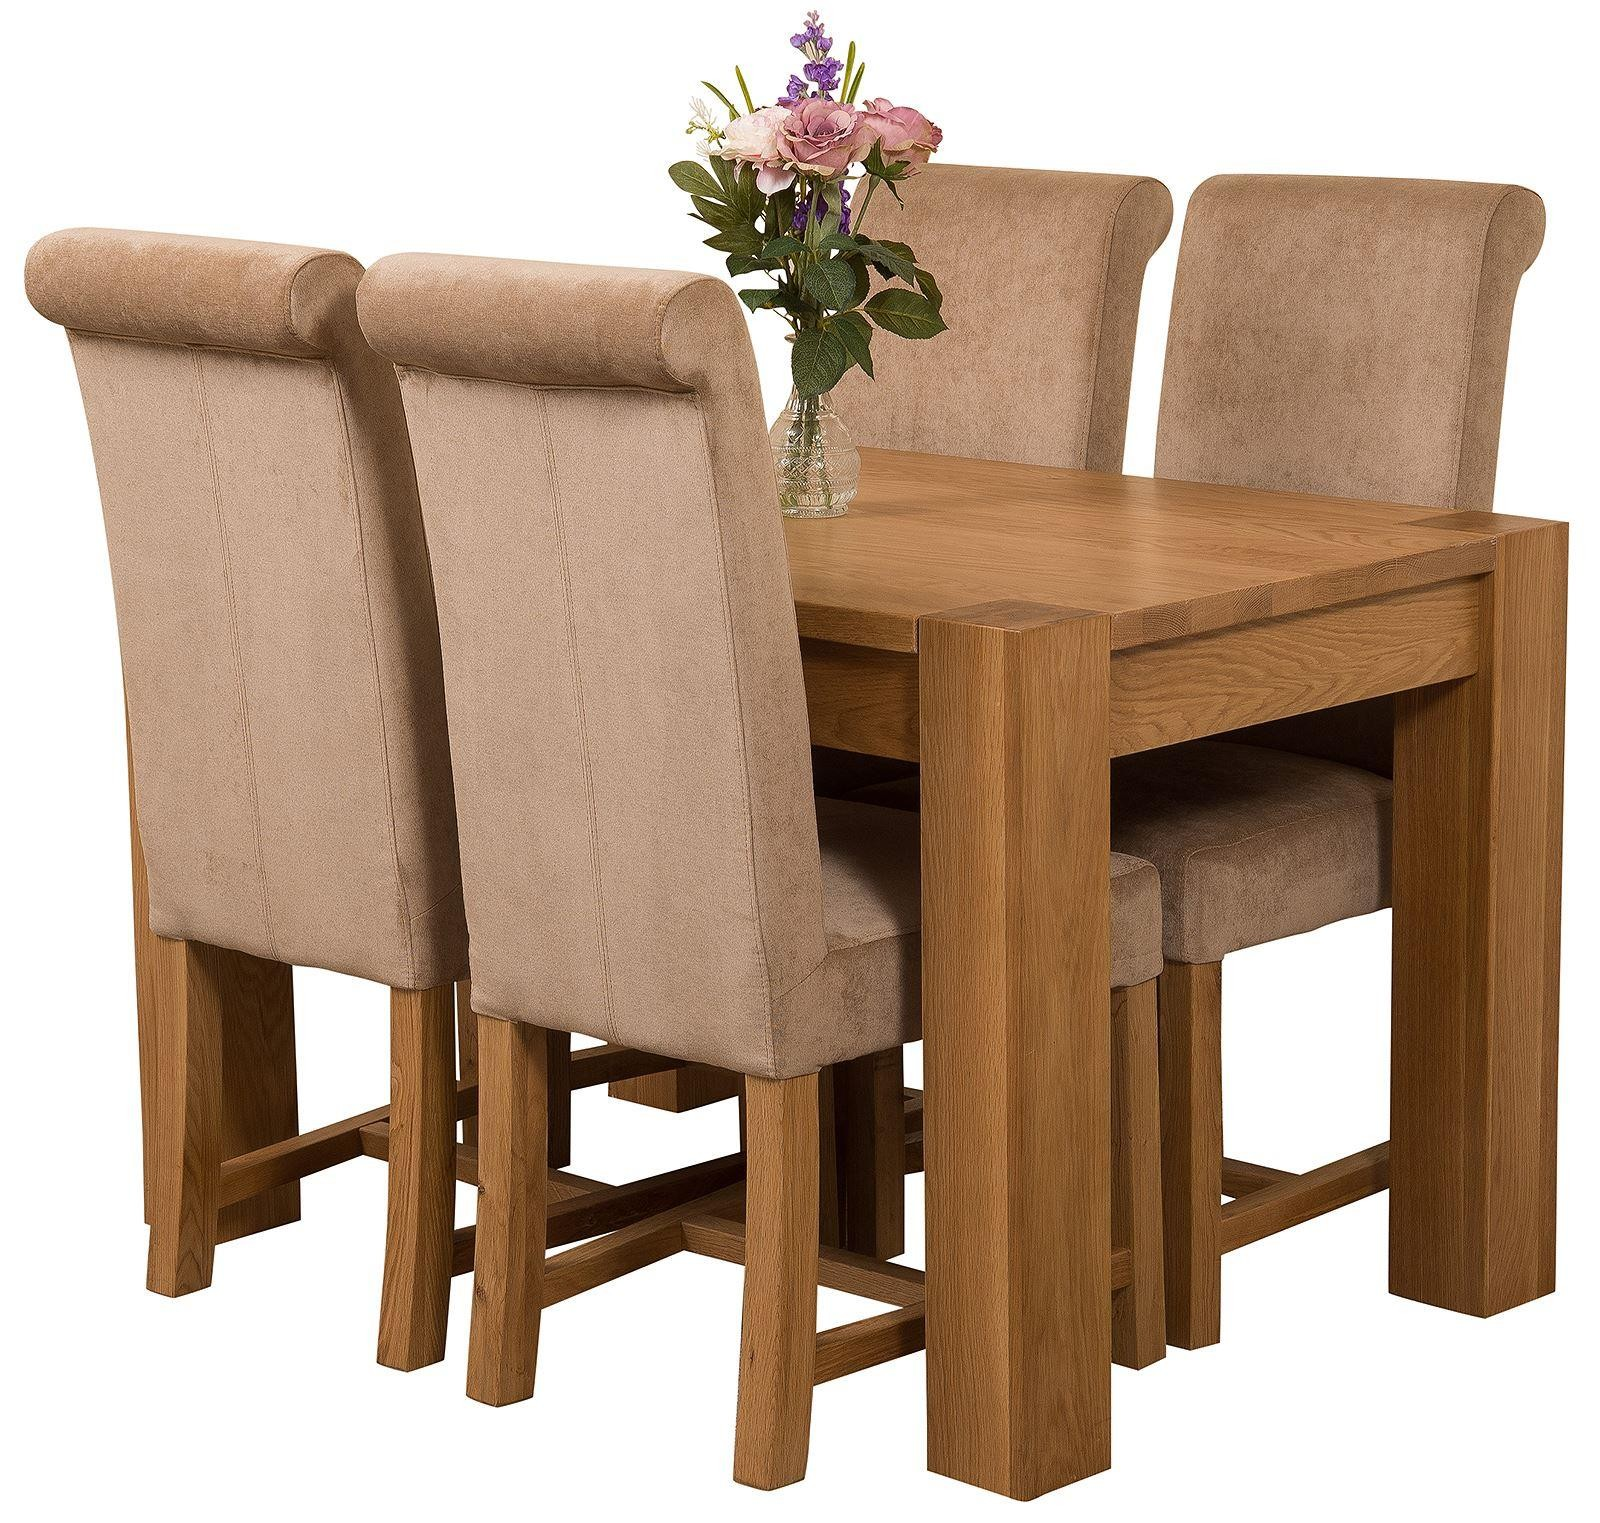 Kuba Solid Oak 125cm Dining Table with 4 Washington Dining Chairs [Beige Fabric]